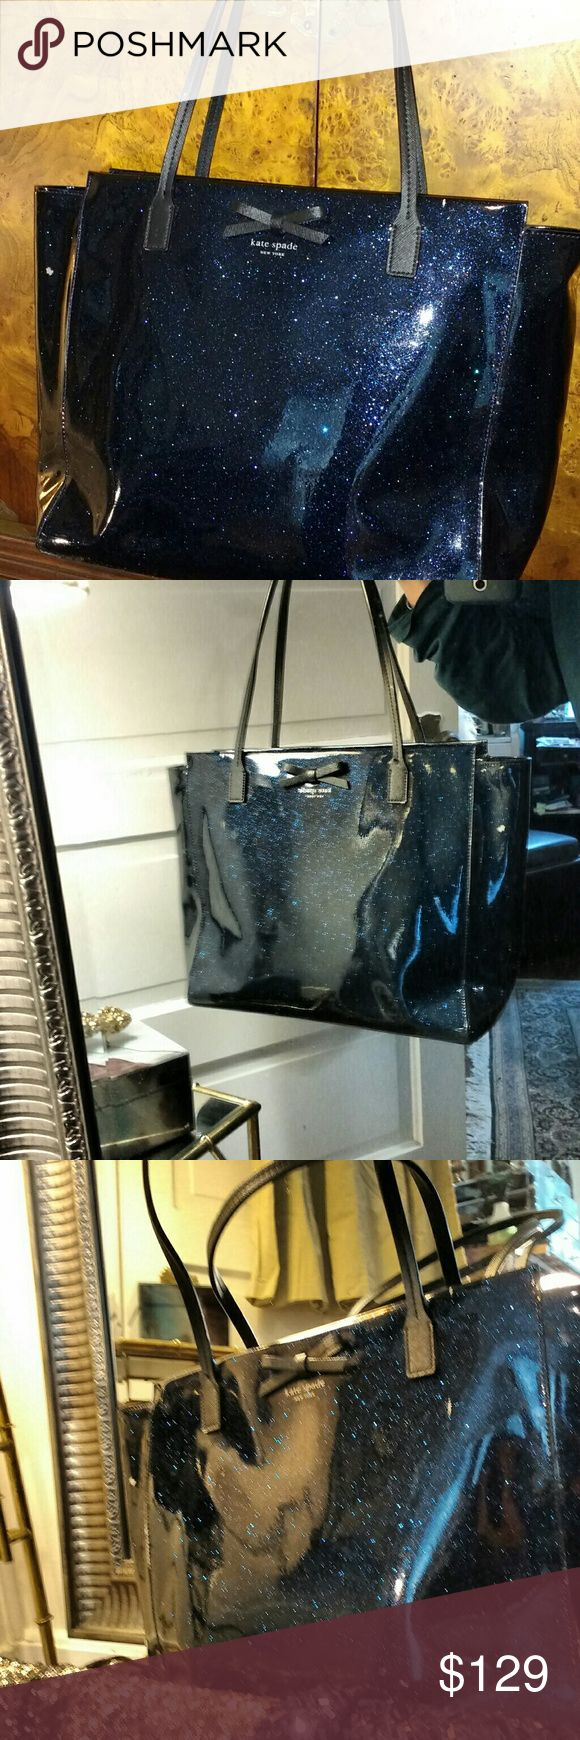 """Kate Spade  Mavis Street Taden Dark Blue Starry Gorgeous AUTHENTIC Kate Spade medium Tote with glitter leather, black leather bow and straps. A roomy tote can fit magazines, or file folders. Zipper closure,  9"""" strap drop.  The bag and lining are pristine, except there are two small scuffs on front and side- and these are clearly shown in pics above. Such a knock out bag! Kate Spade Bags Totes"""